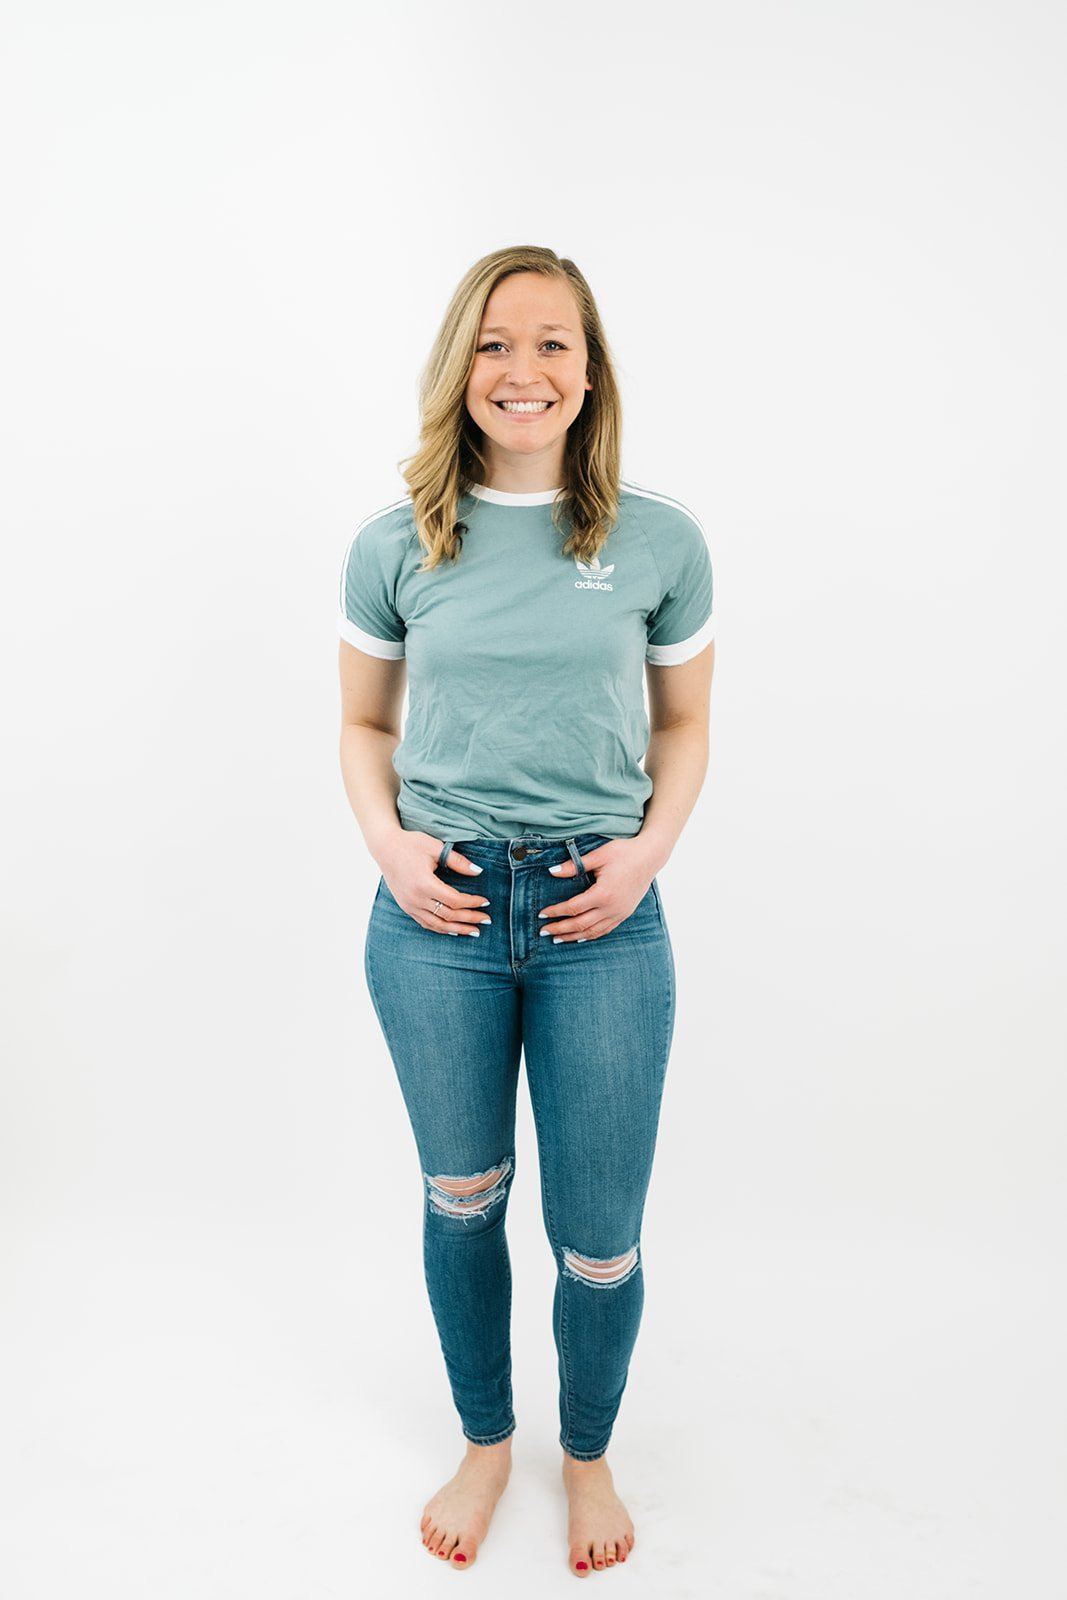 blonde woman in ripped jeans and a green t-shirt